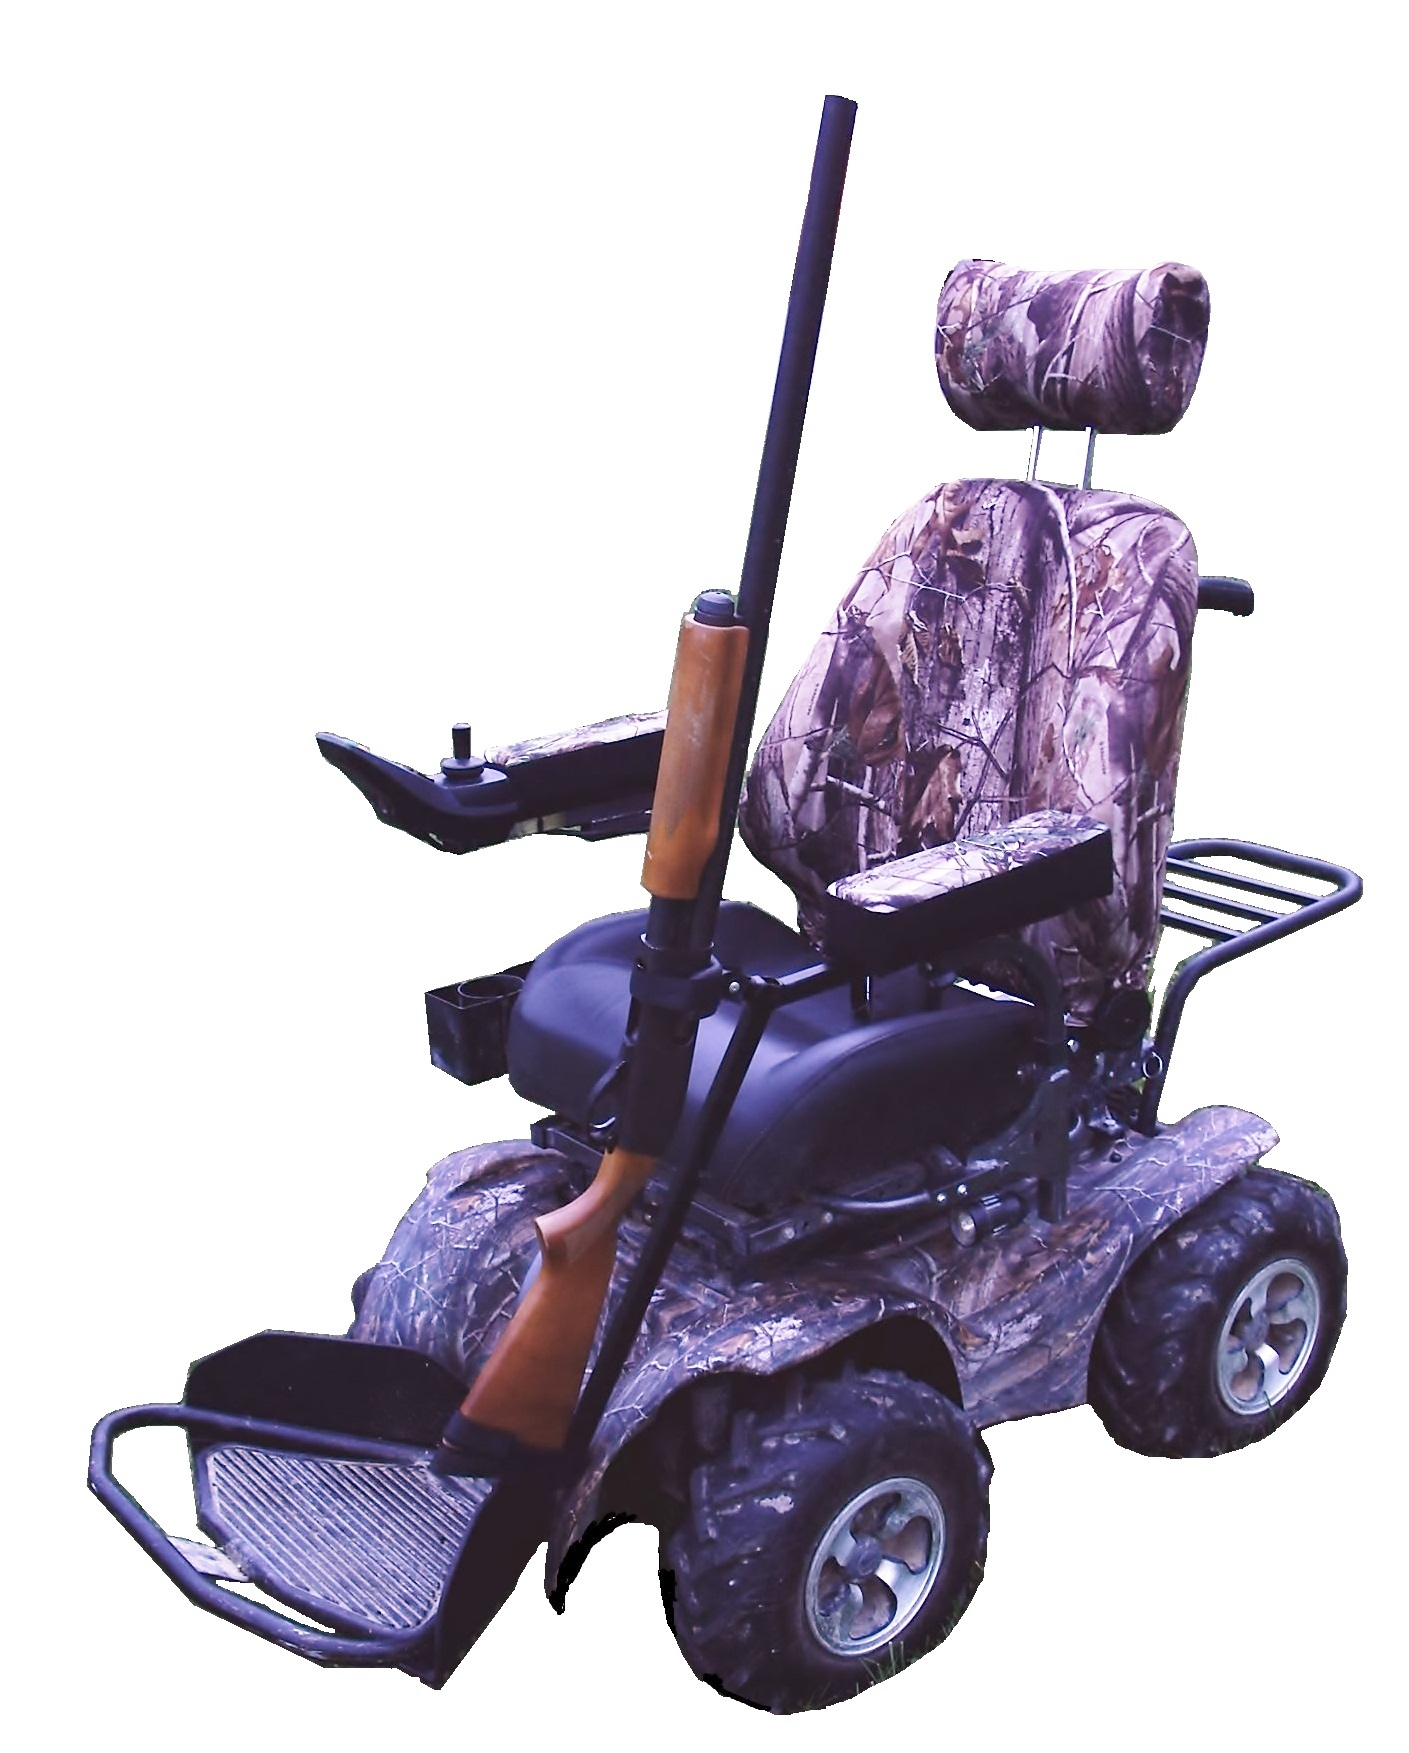 camo chair with gun mount- light.jpg